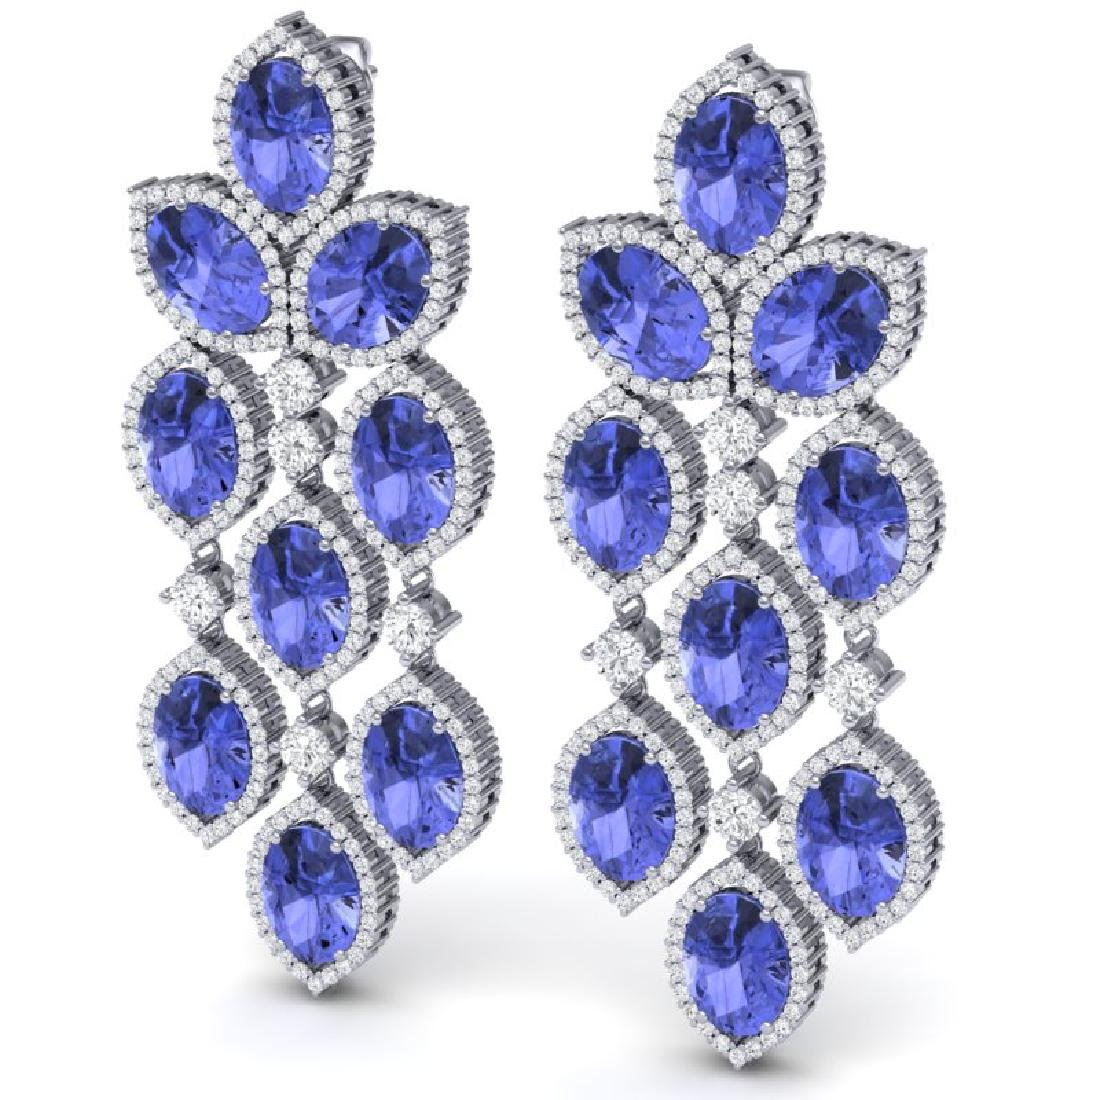 20.53 CTW Royalty Tanzanite & VS Diamond Earrings 18K - 2